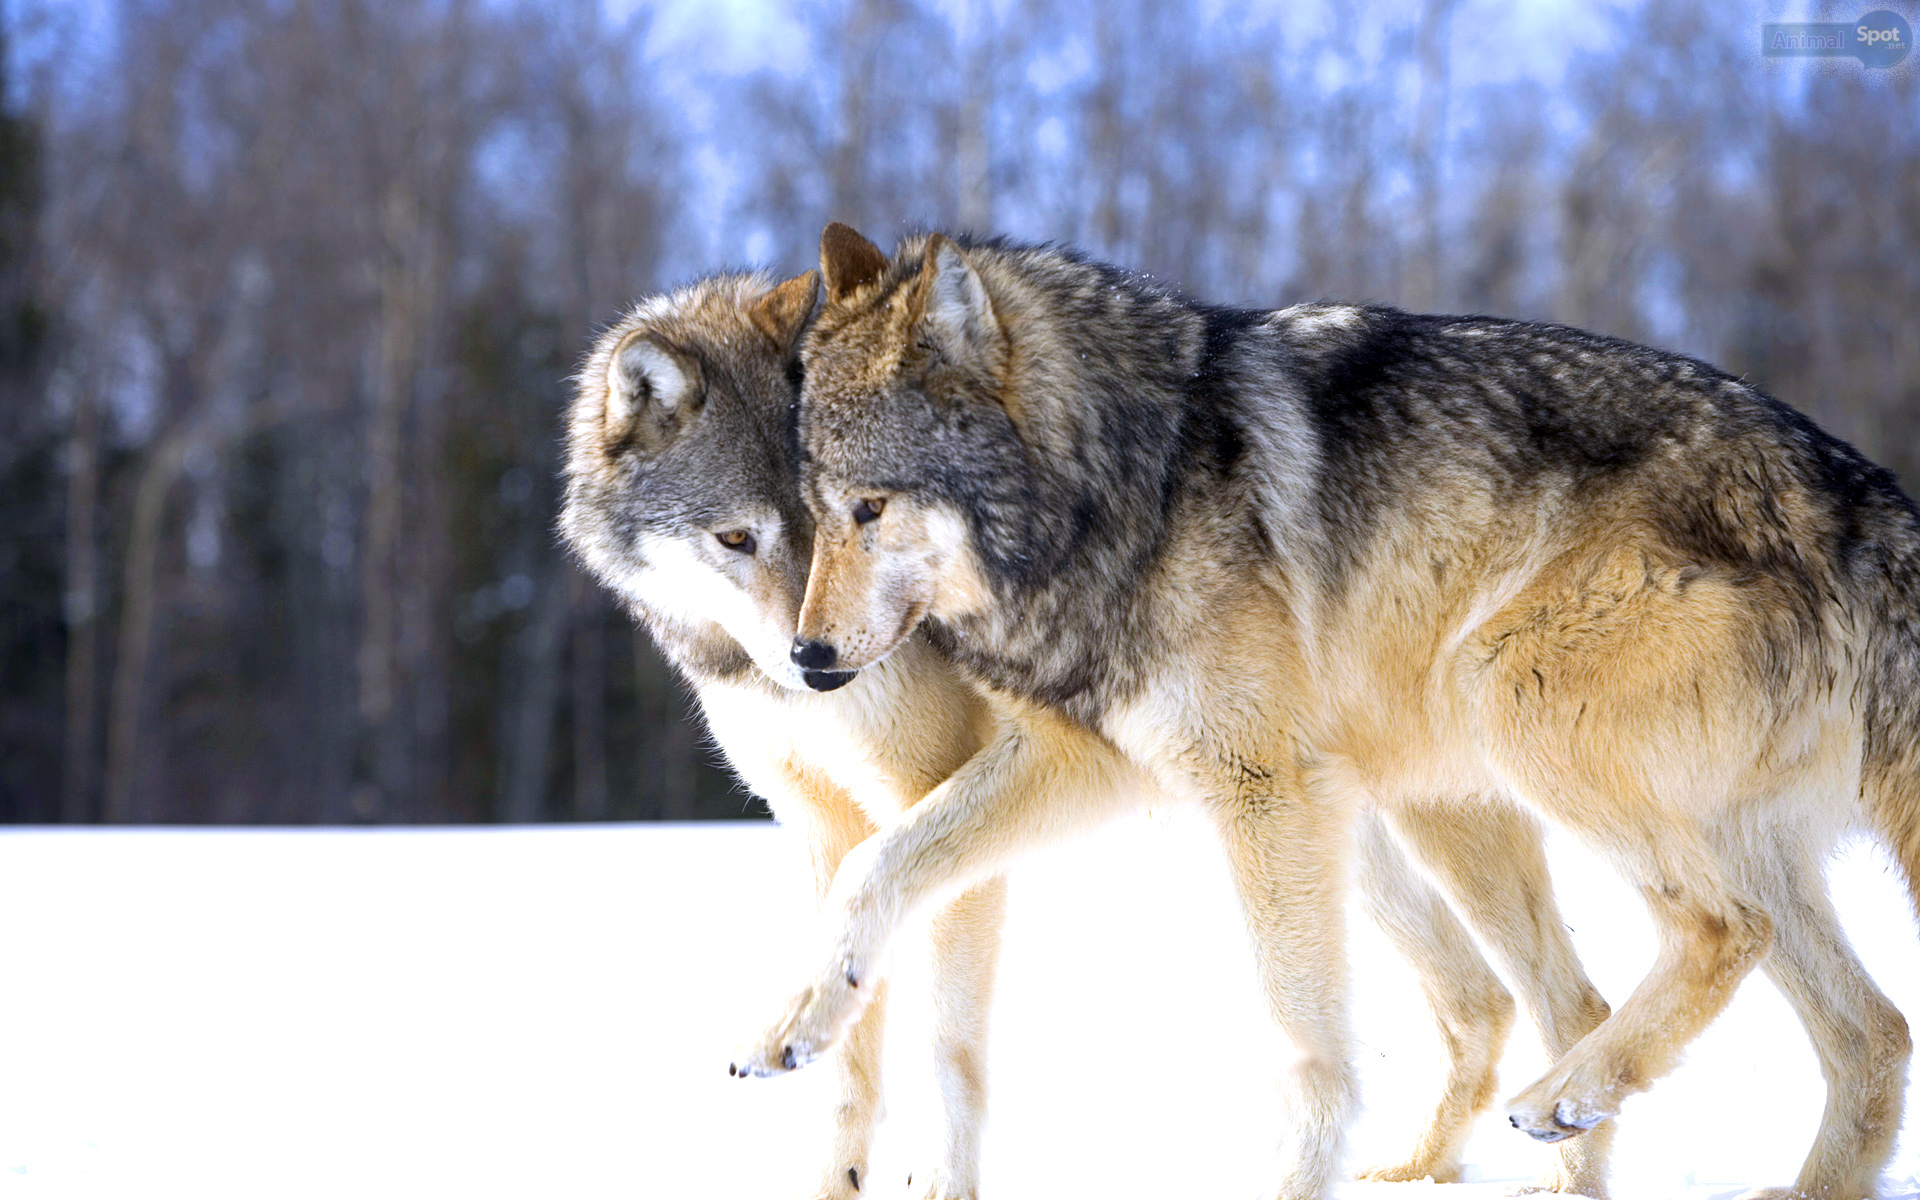 Wolf Wallpapers Animal Spot HD Wallpapers Download Free Images Wallpaper [1000image.com]